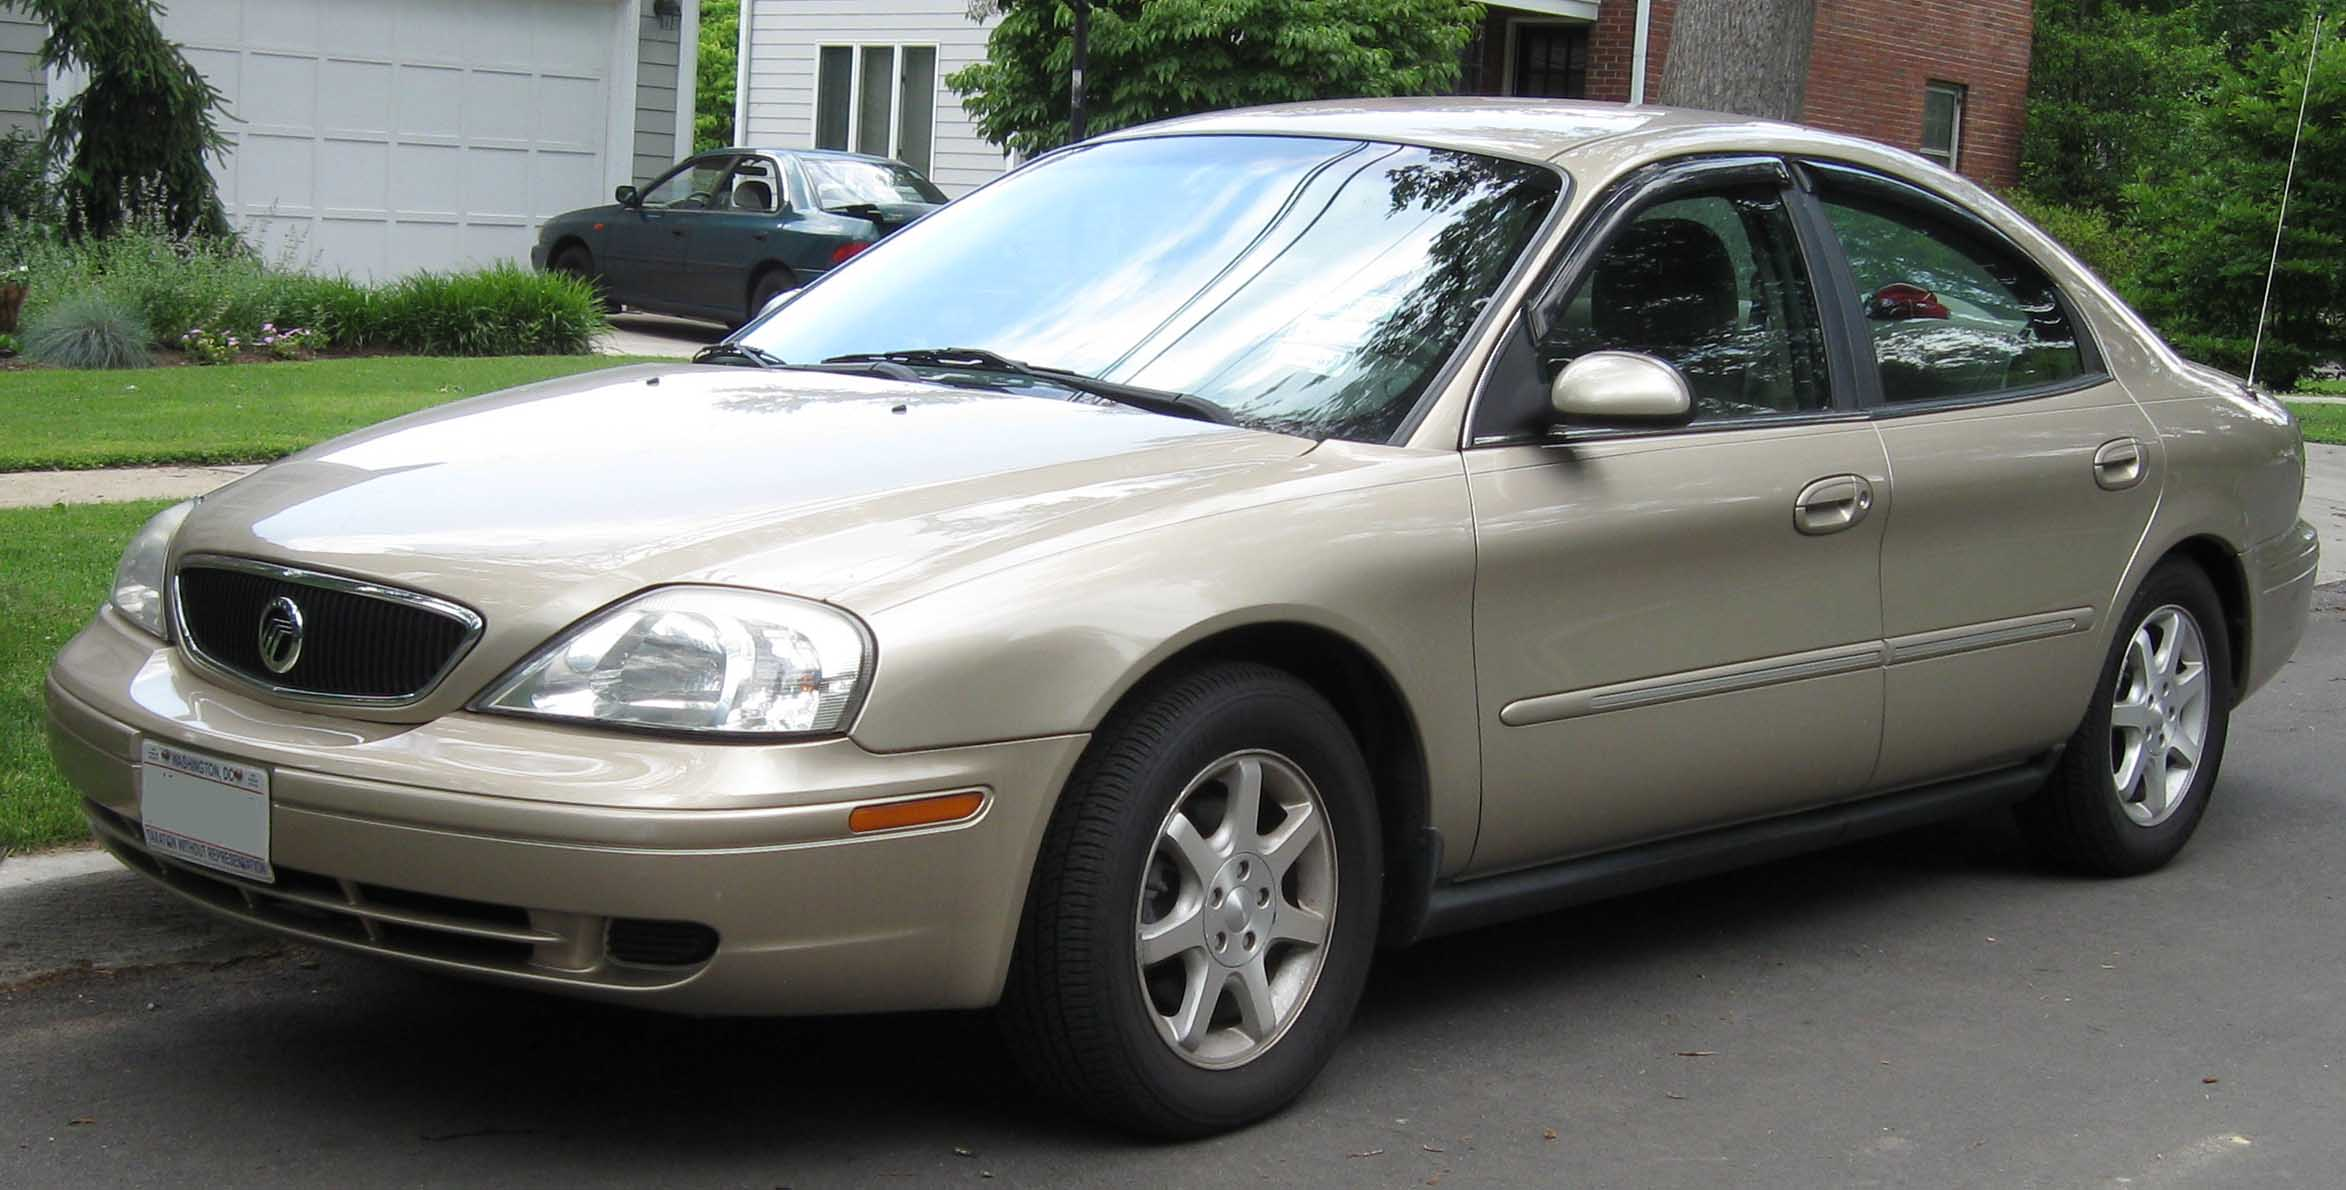 Ford taurus 2000 black until 2003 received the